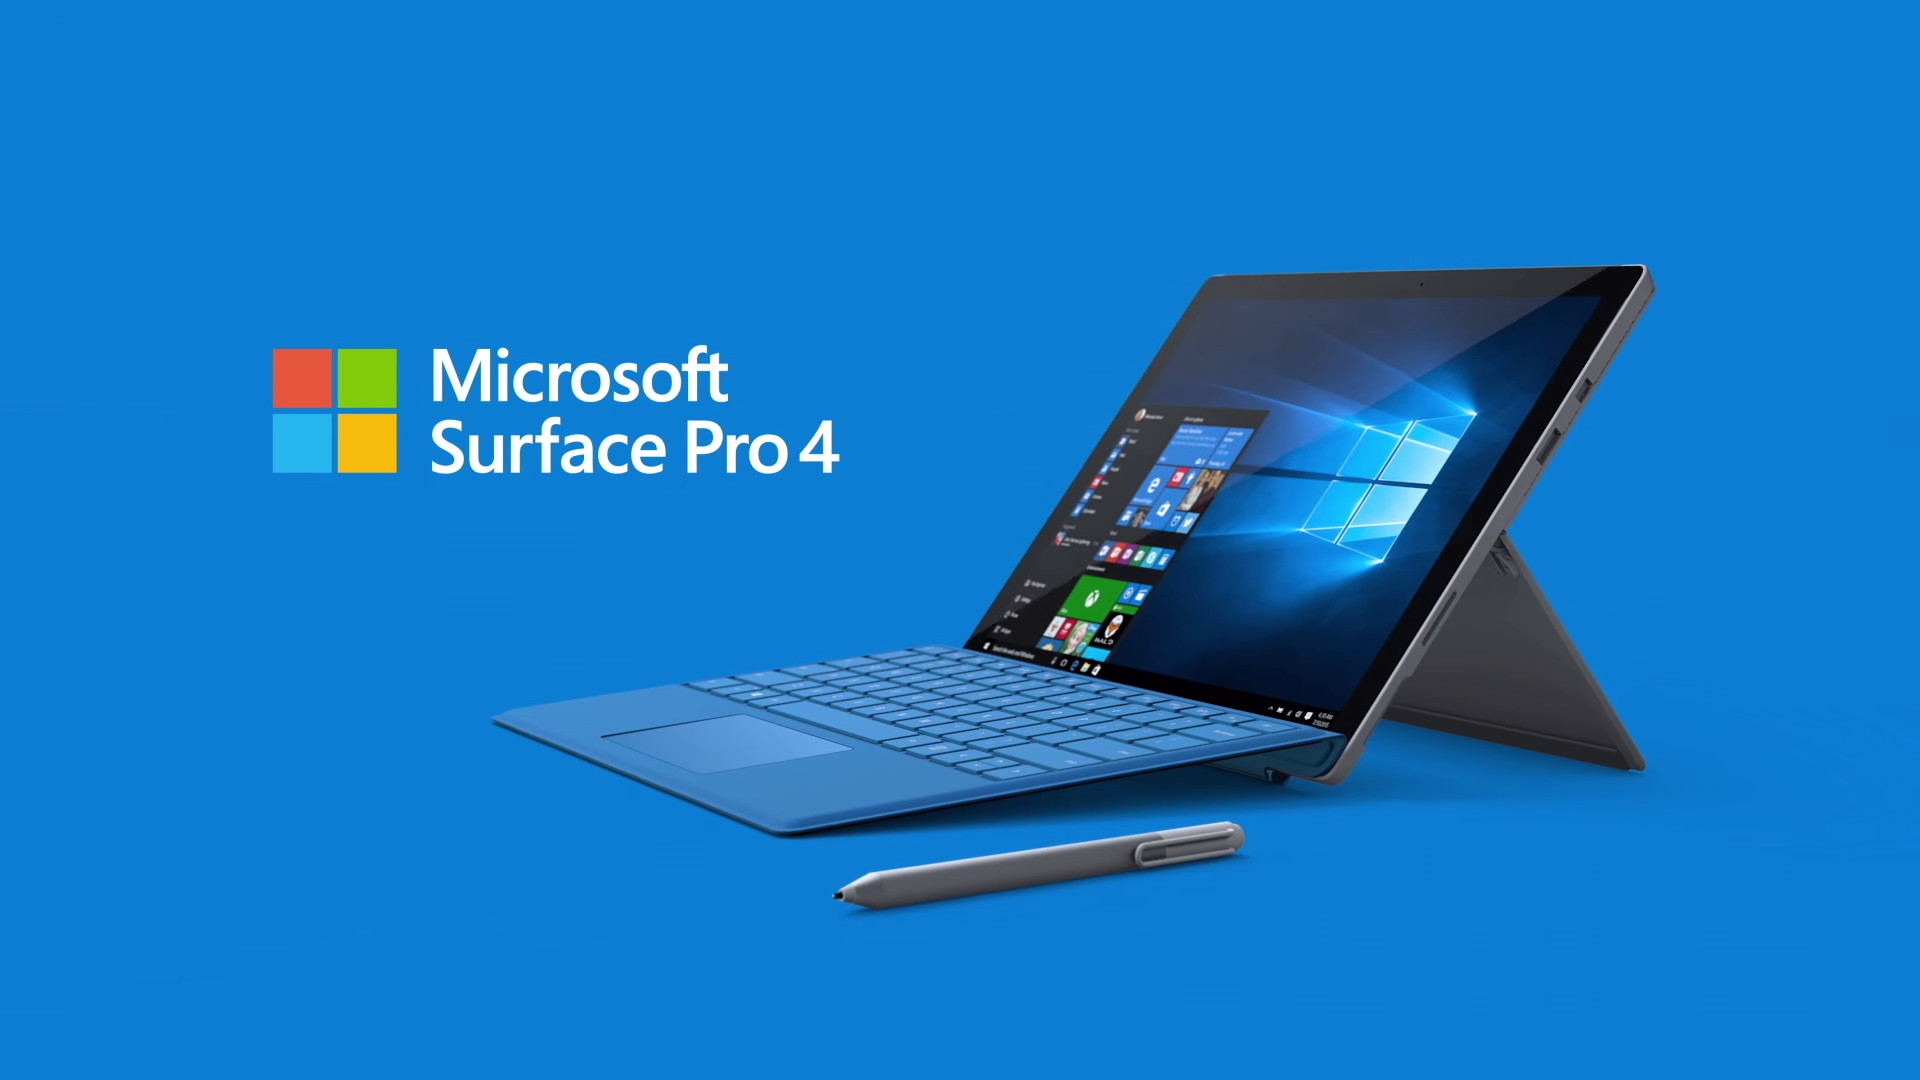 Microsoft Surface Pro 4 Wallpapers 85 Images